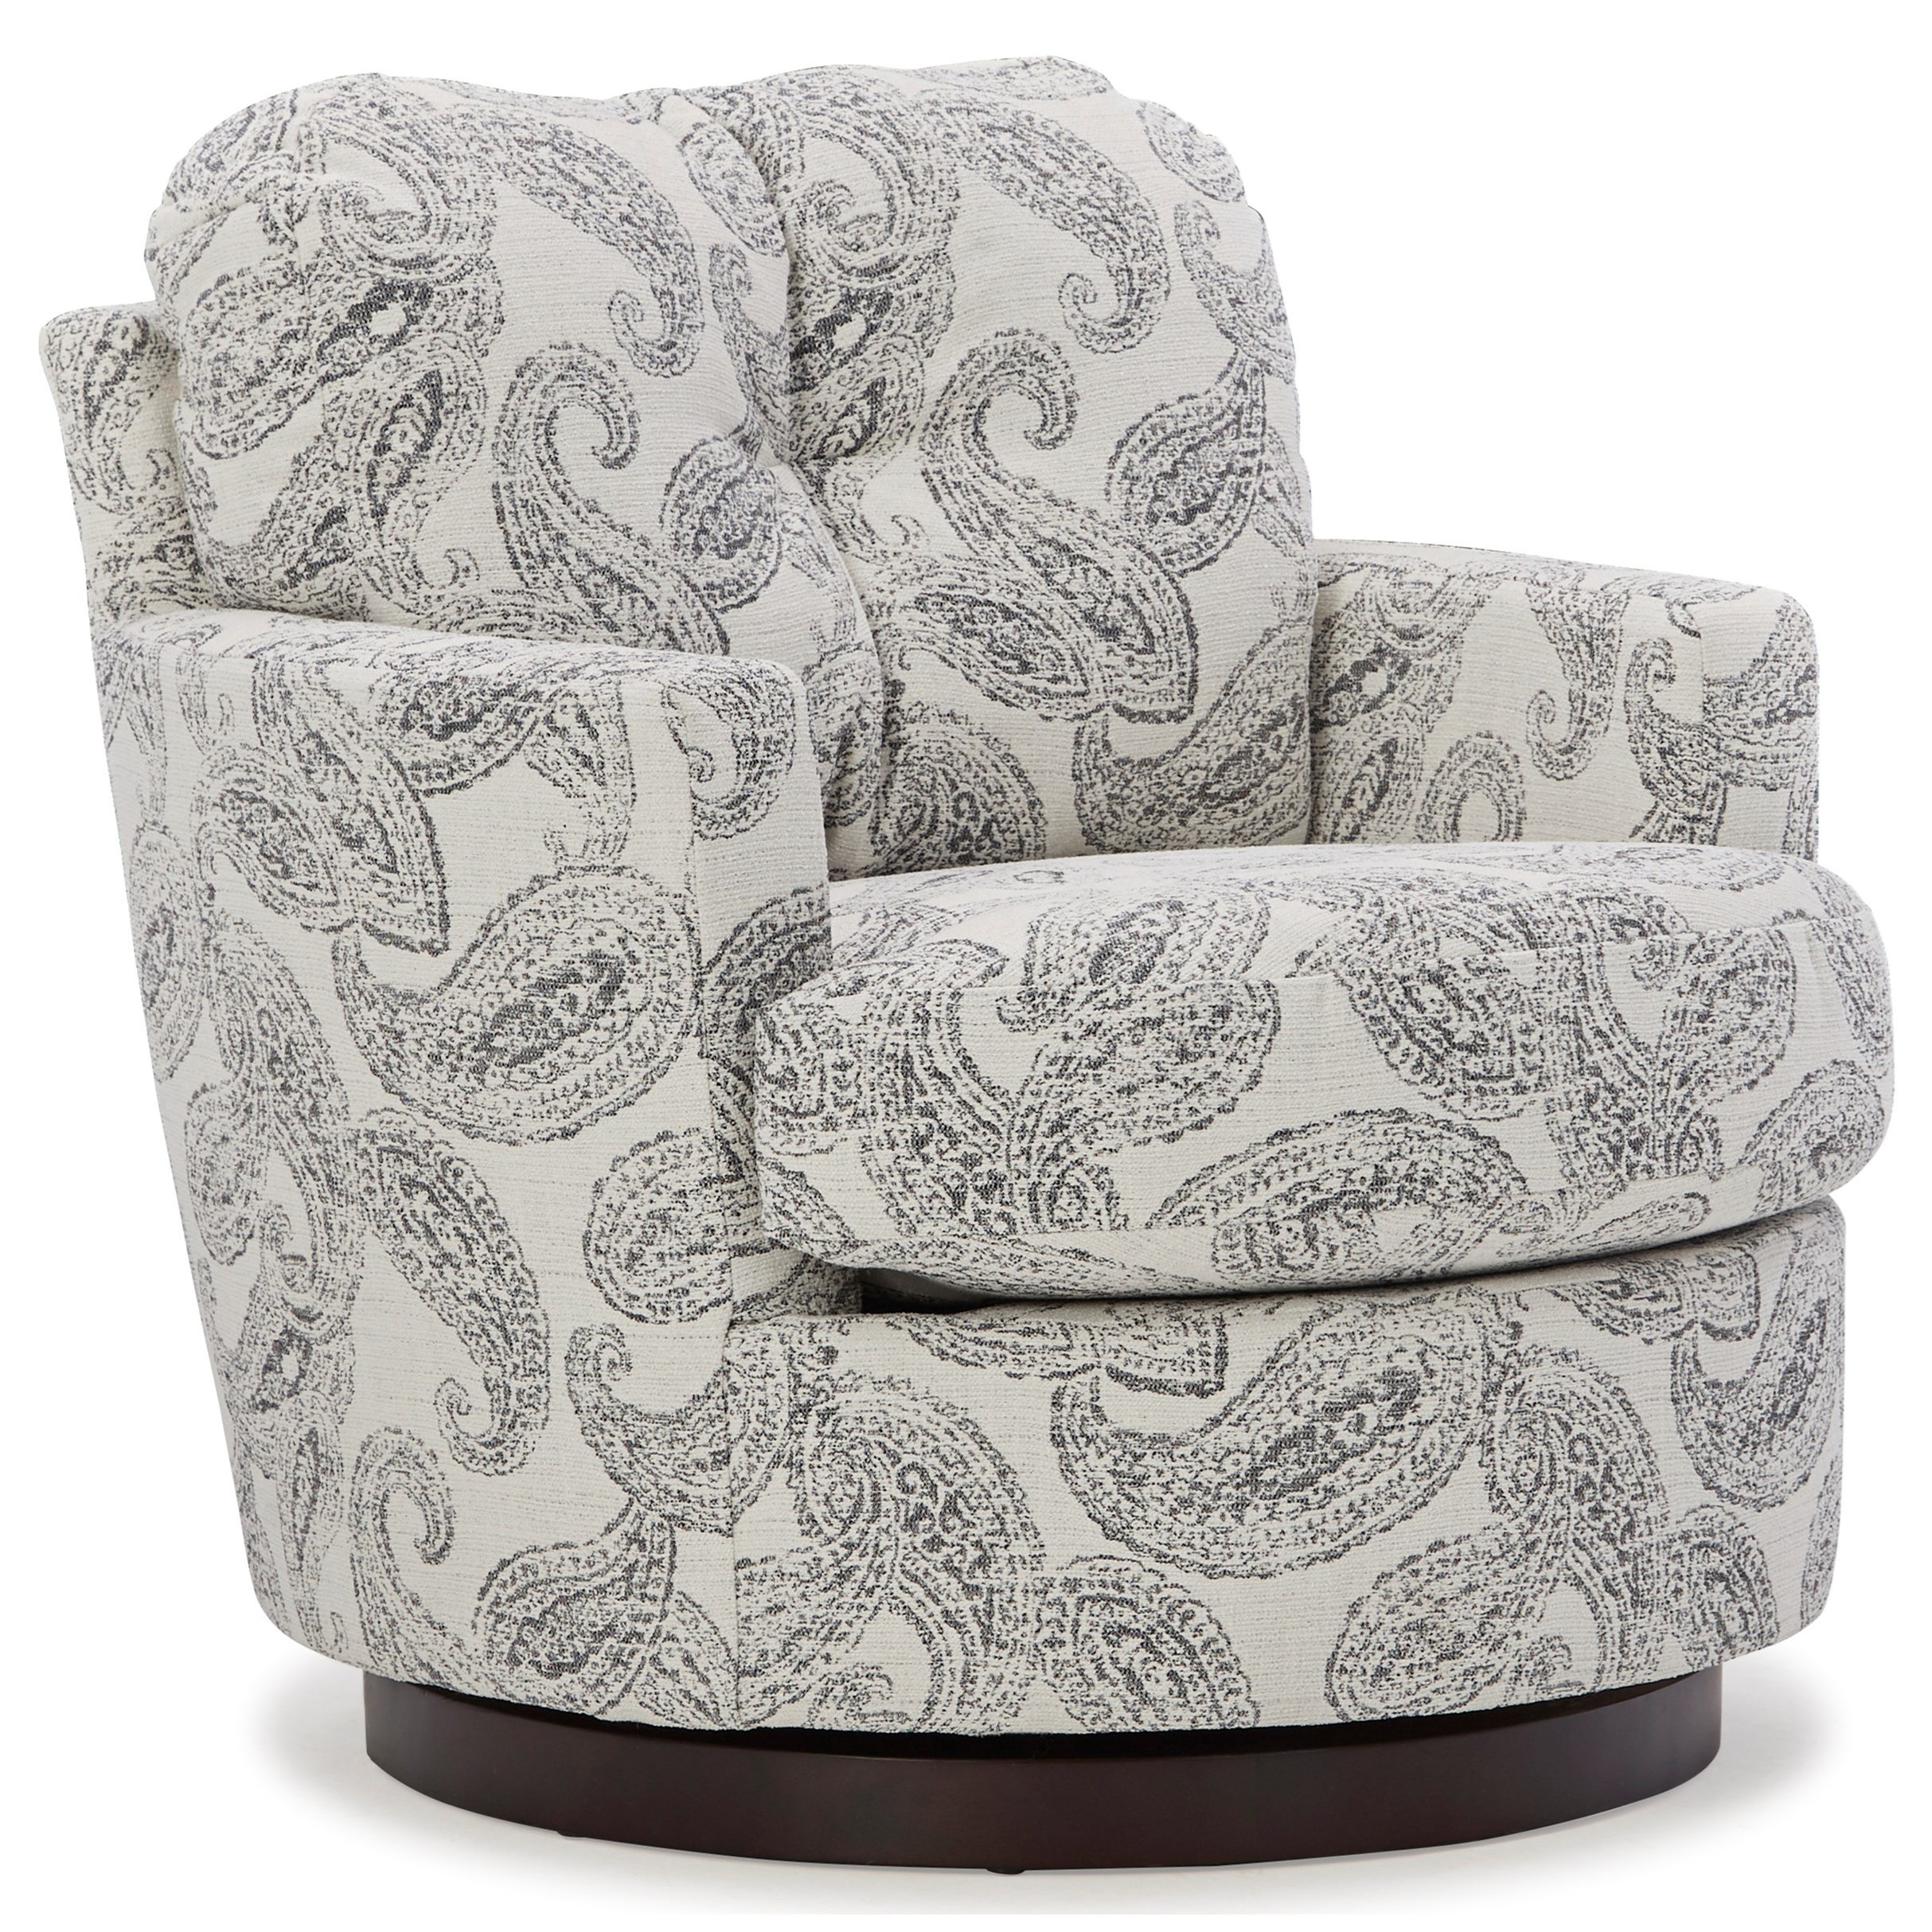 Swivel Barrel Chairs Swivel Chair by Best Home Furnishings at Darvin Furniture